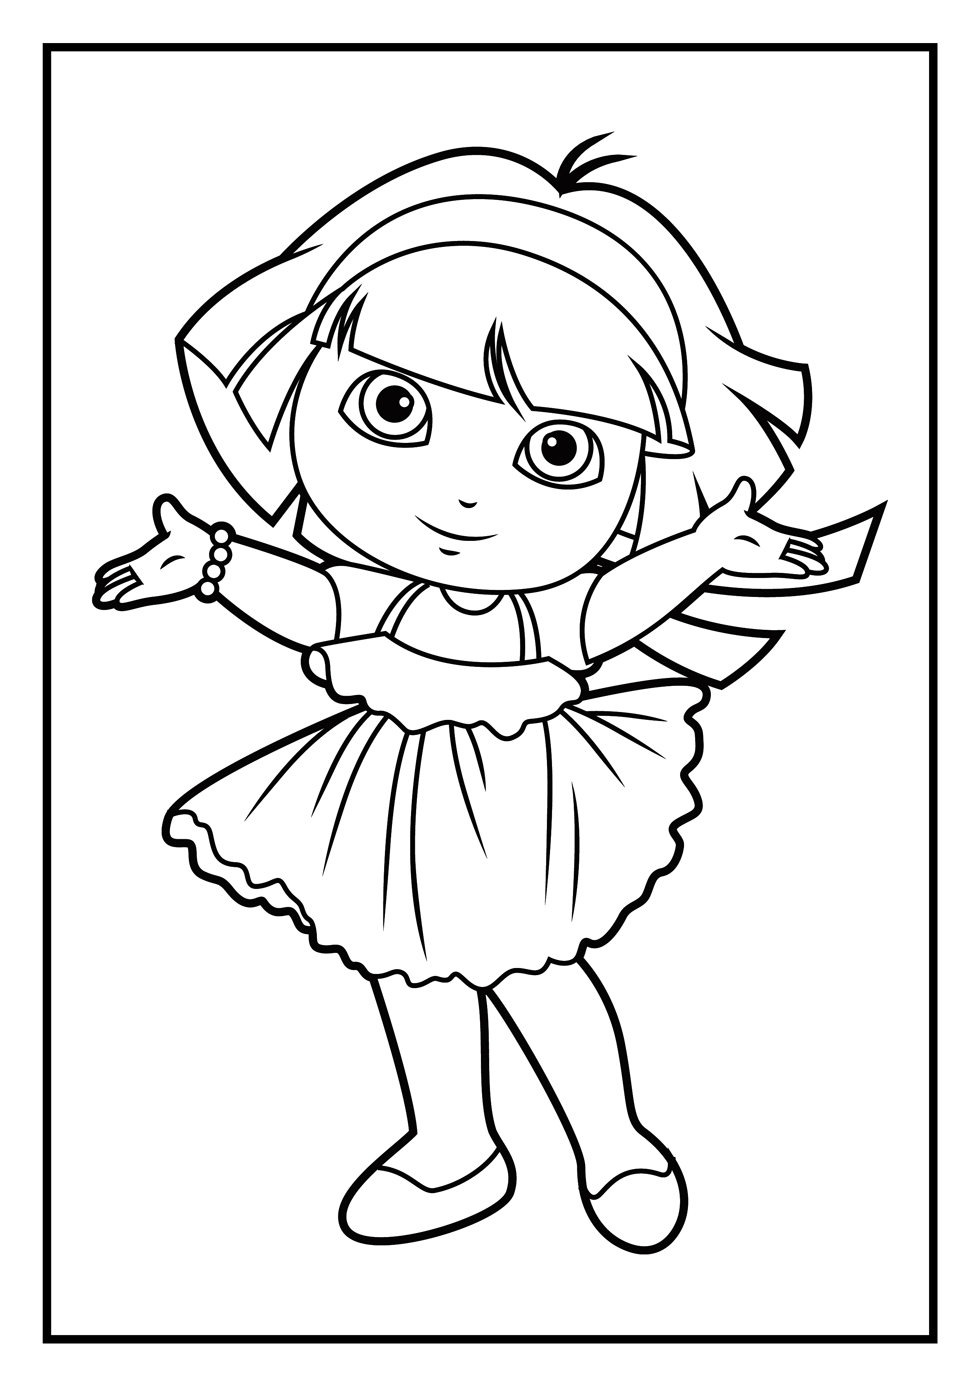 dora coloring pages free printable - free printable coloring pages dora 2015